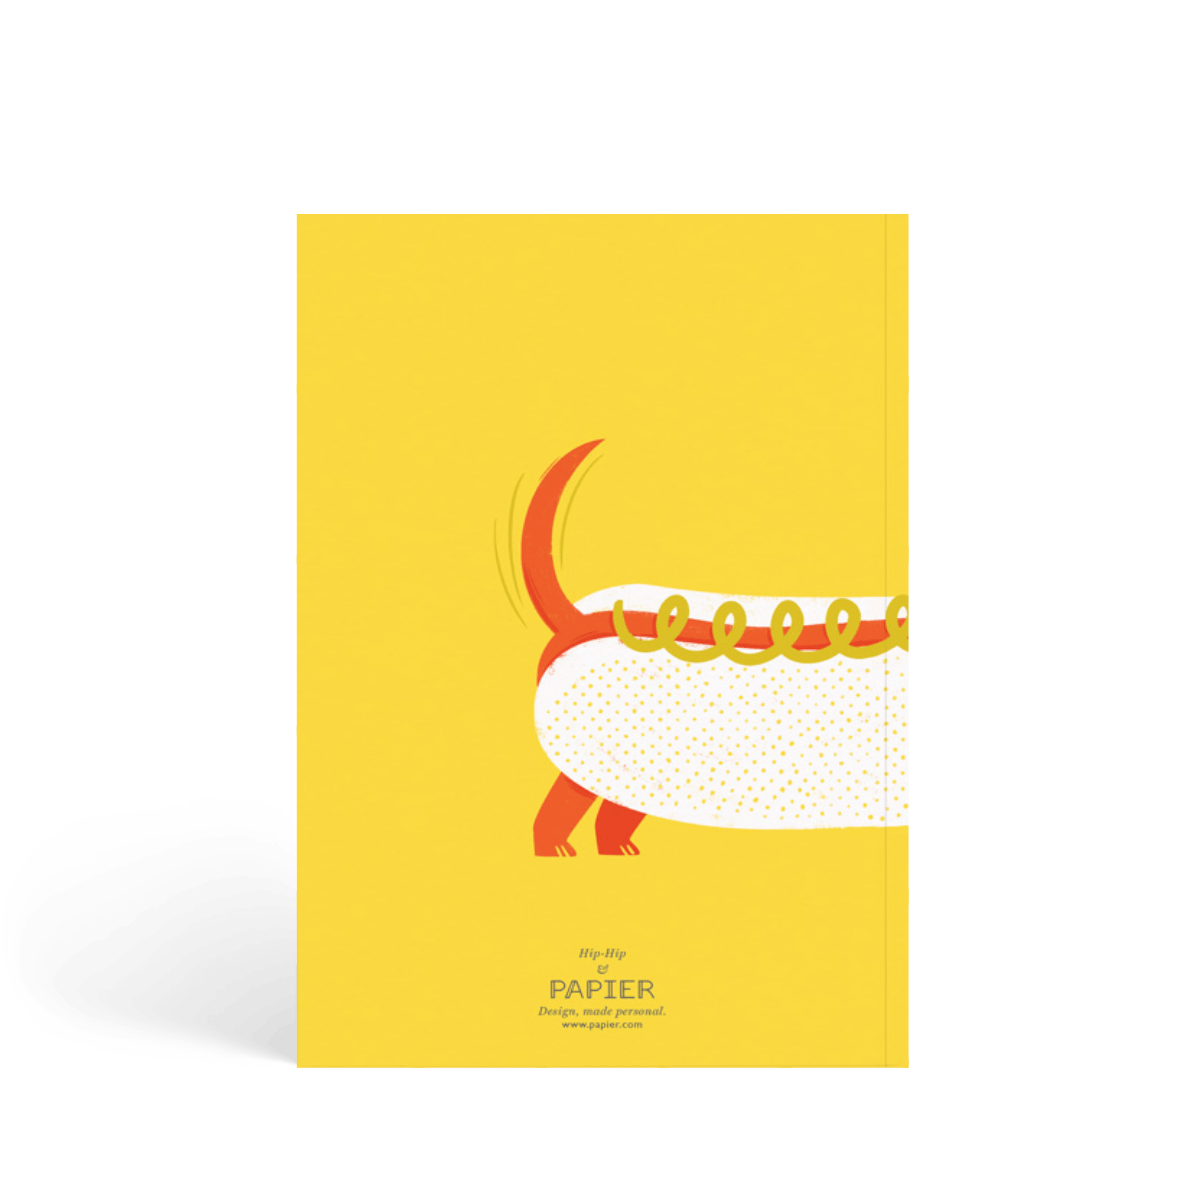 Https%3a%2f%2fwww.papier.com%2fproduct image%2f6377%2f5%2fhappy hot dog 1625 back 1461319523.png?ixlib=rb 1.1